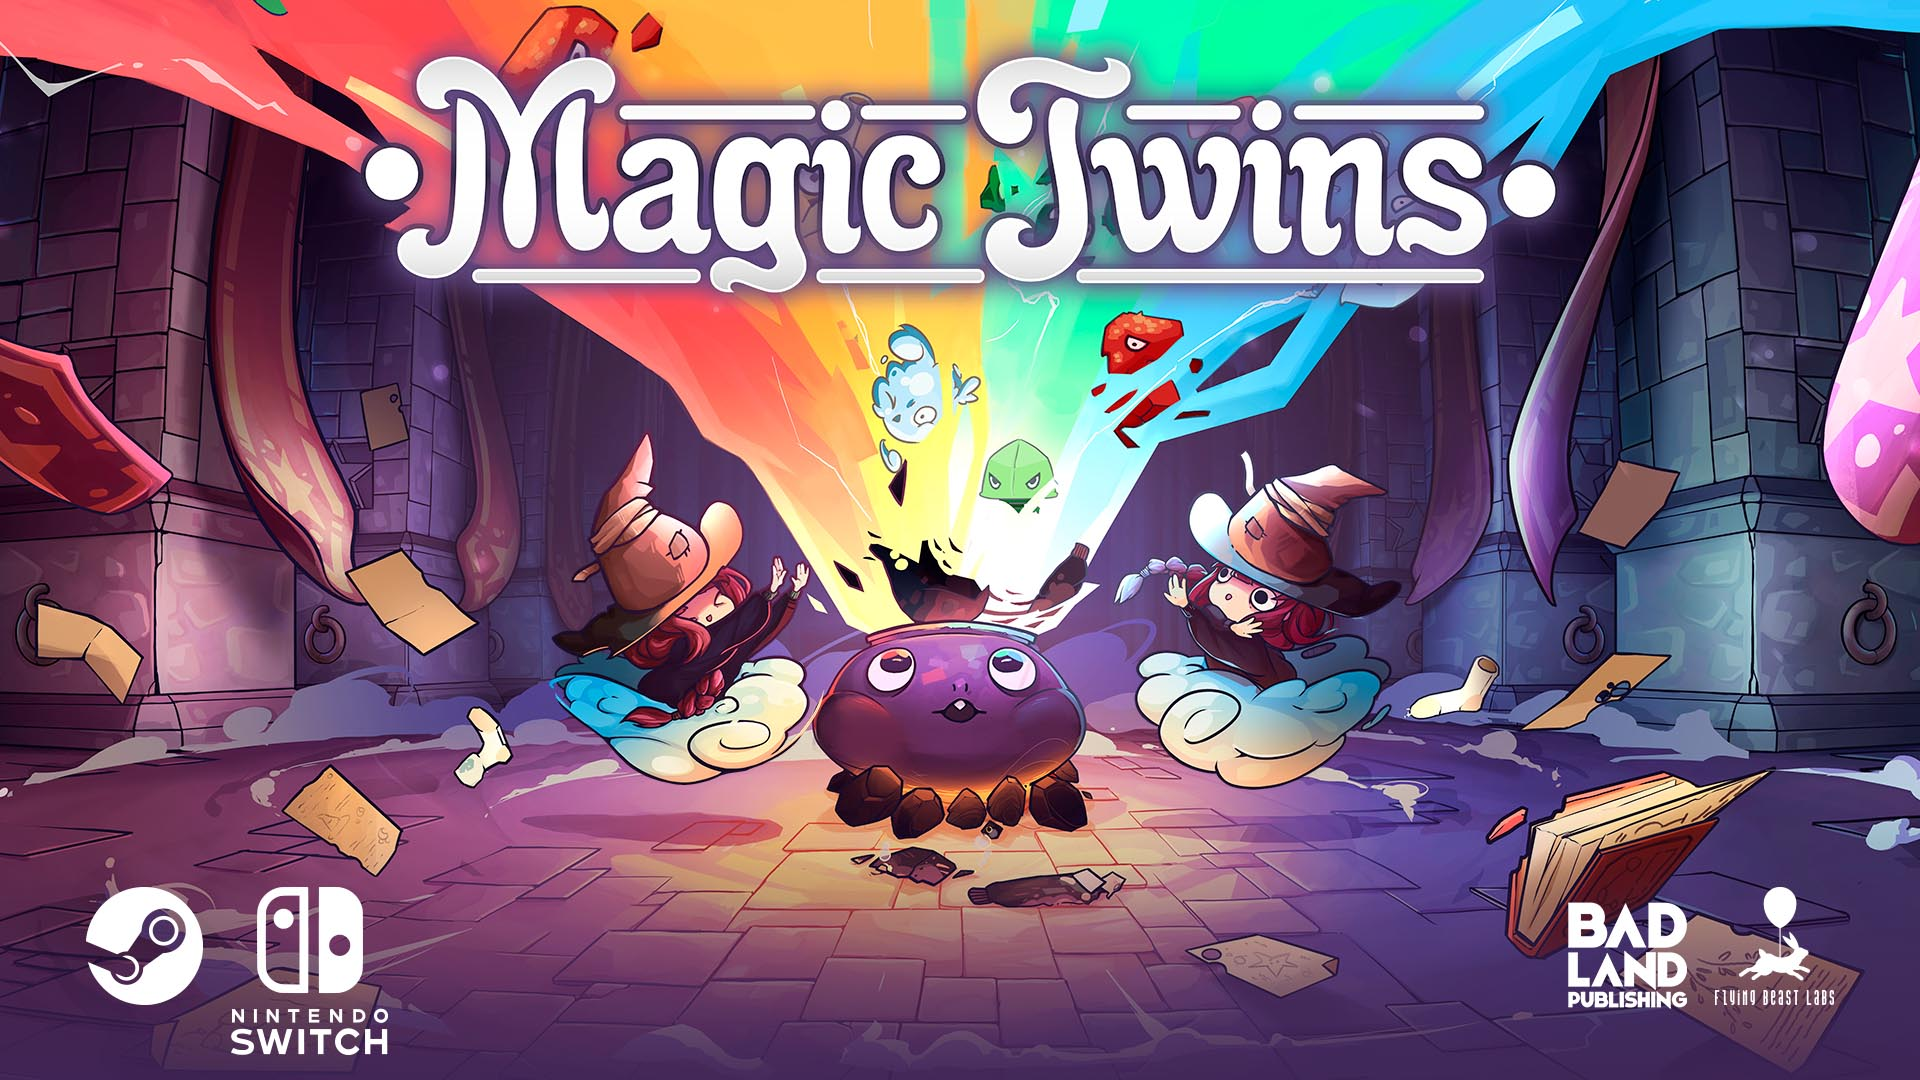 Magical_Twins_Badland_Publishing